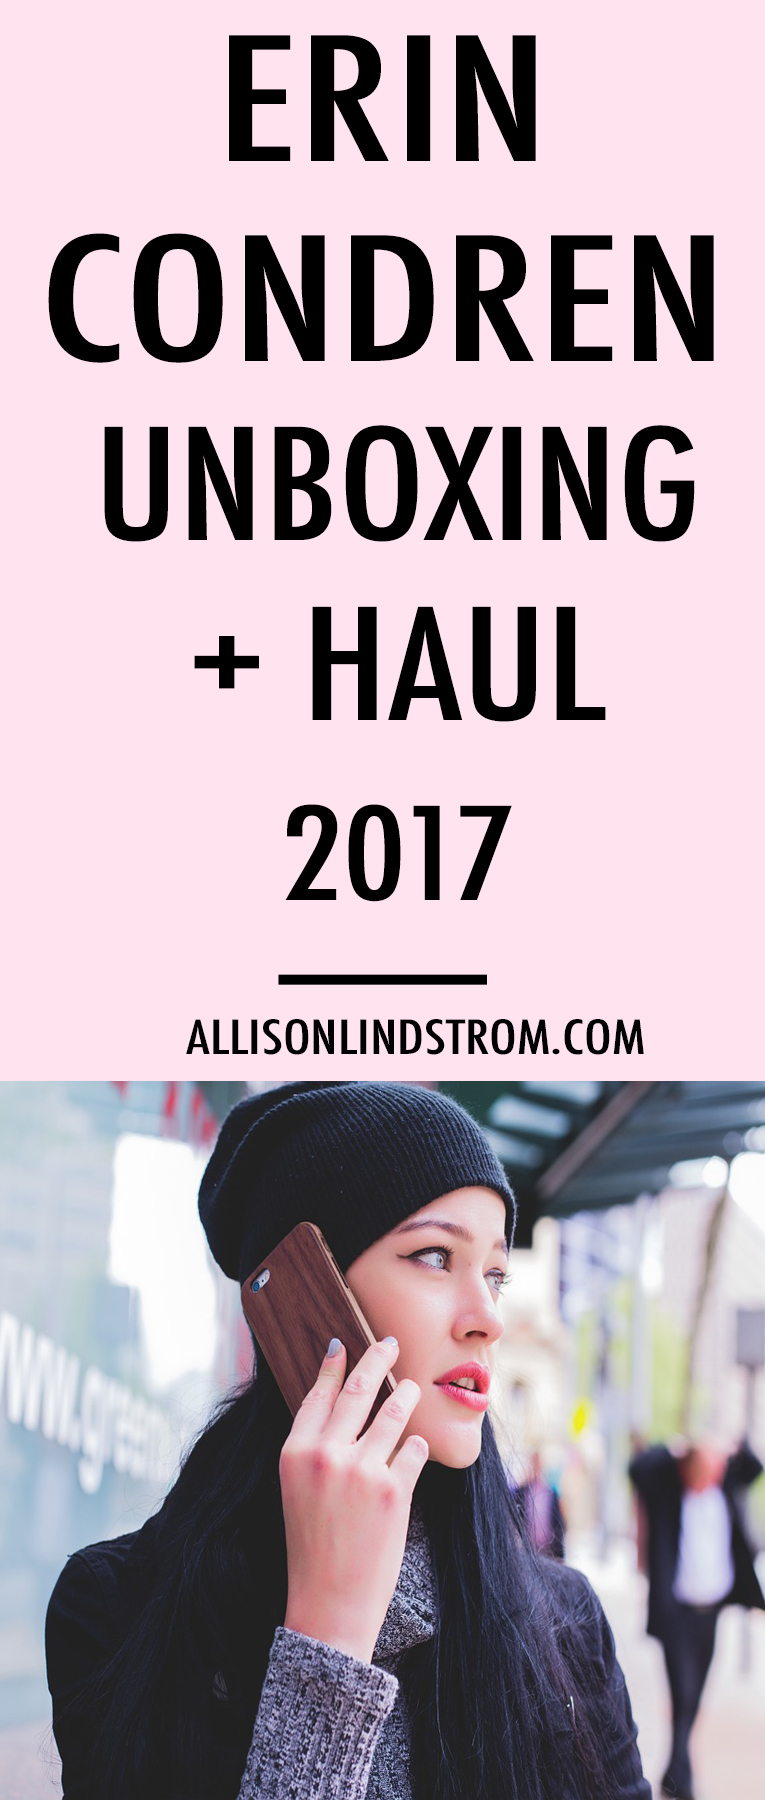 Time for an Erin Condren planner UNBOXING & HAUL for 2017!!! I purchased the Erin Condren LifePlanner and some other accessories so I'm excited to give you a sneak peak.